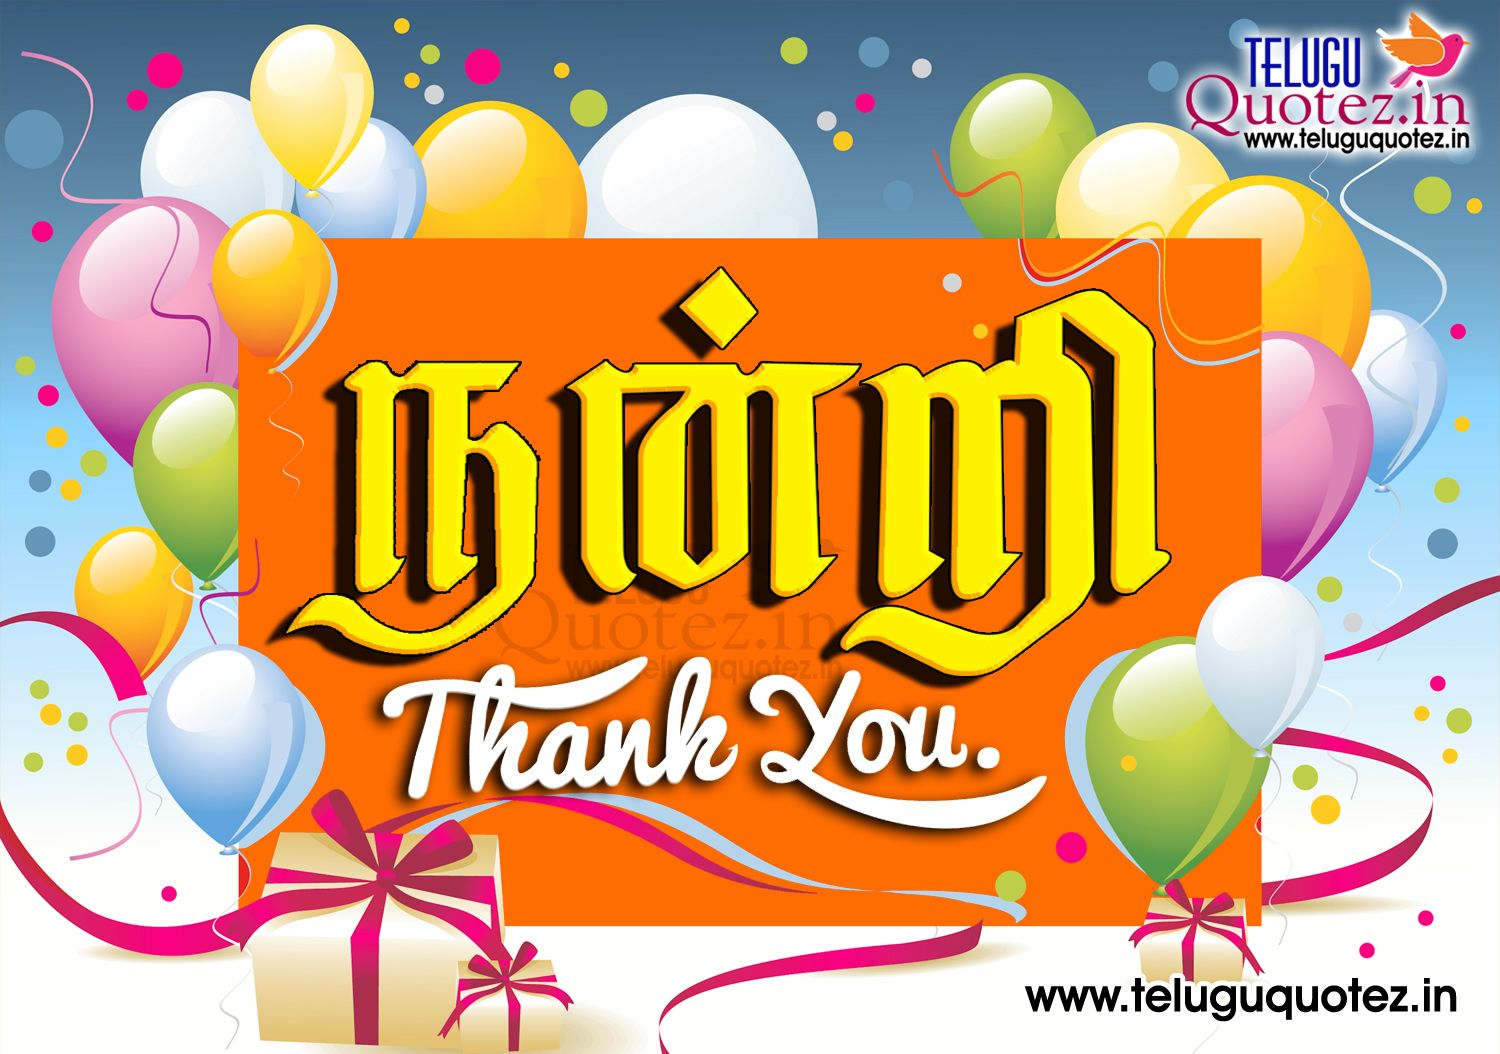 Thank you nandri quotes for birthday wishes in tamil language thank you nandri quotes for birthday wishes in kristyandbryce Choice Image